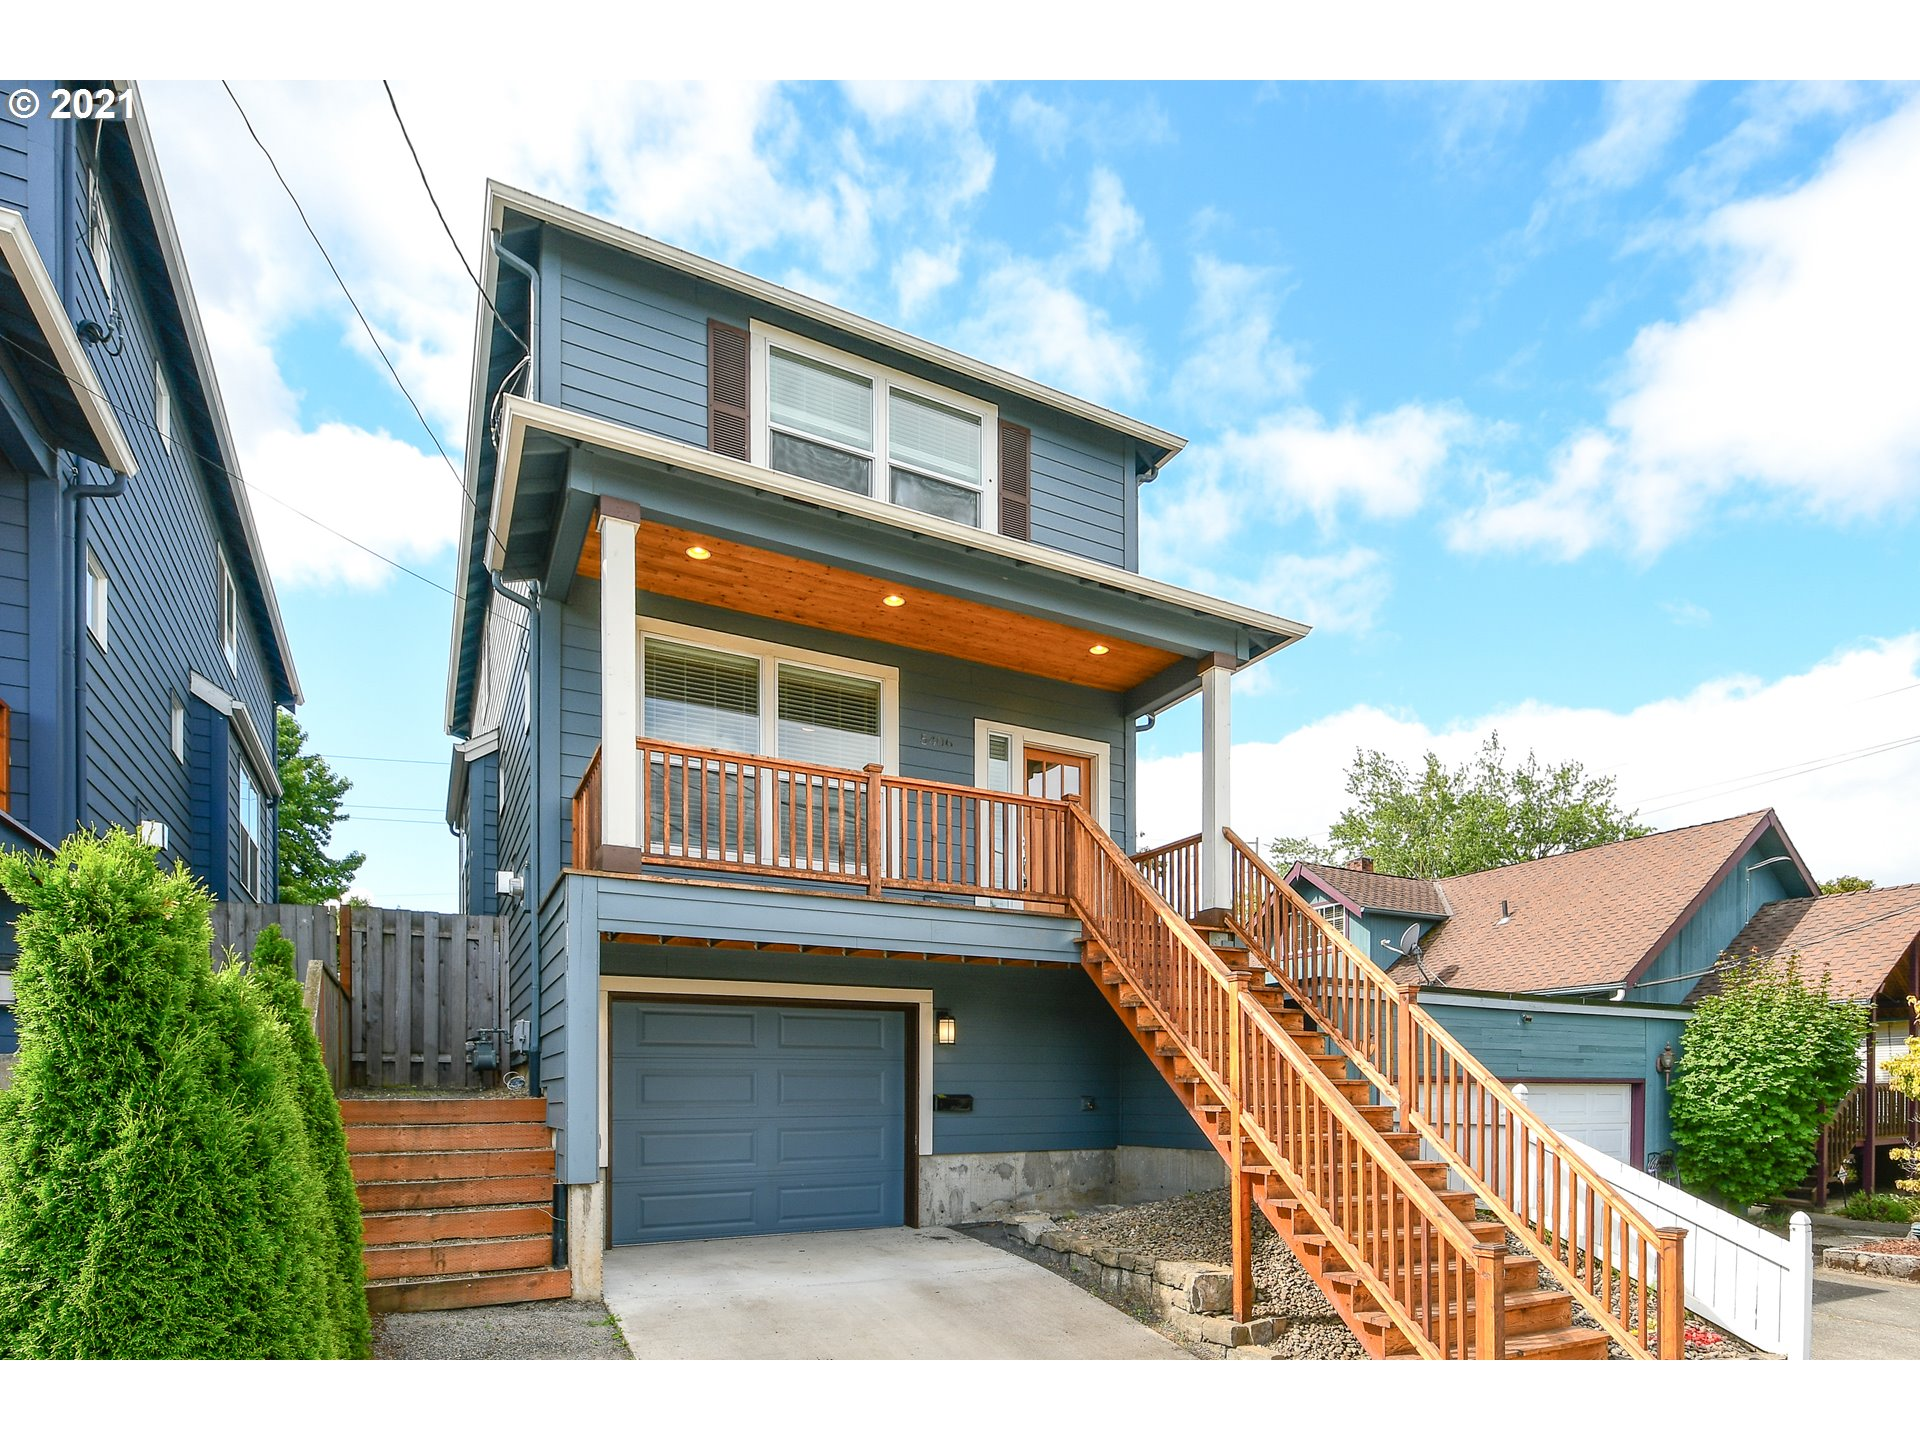 Perfect Traditional with a great room floor plan, Chefs kitchen, slab counters, undermount-sink and custom cabinets. owners suite with dual vanities, walk-in closets with buildouts. Ideally located, easy freeway access, excellent bike and walk scores. [Home Energy Score = 6. HES Report at https://rpt.greenbuildingregistry.com/hes/OR10193568]